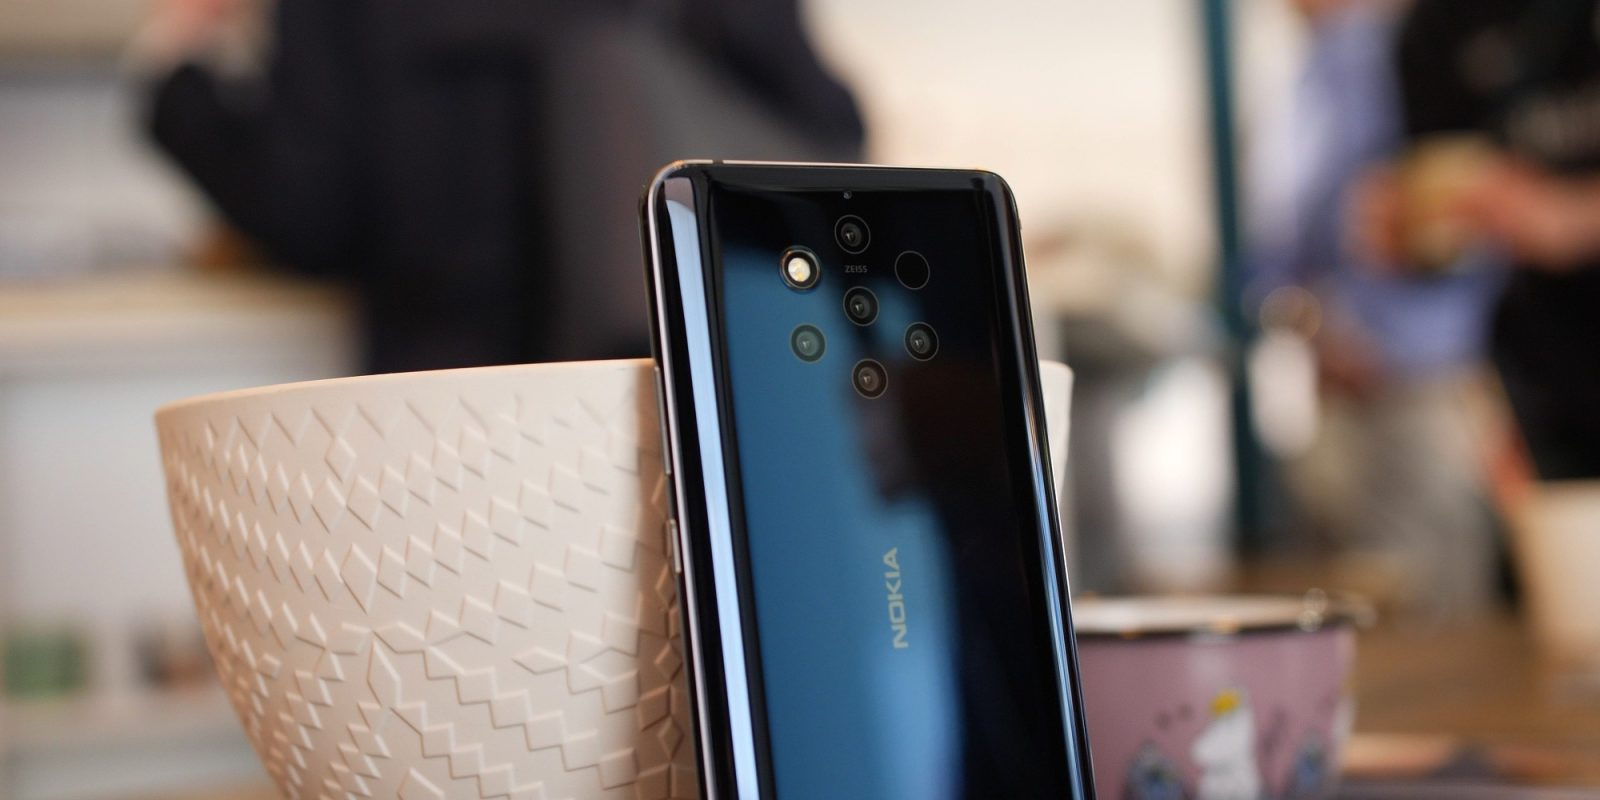 All of the Nokia 9 PureView's cameras are yours for $400 (Reg. $600)